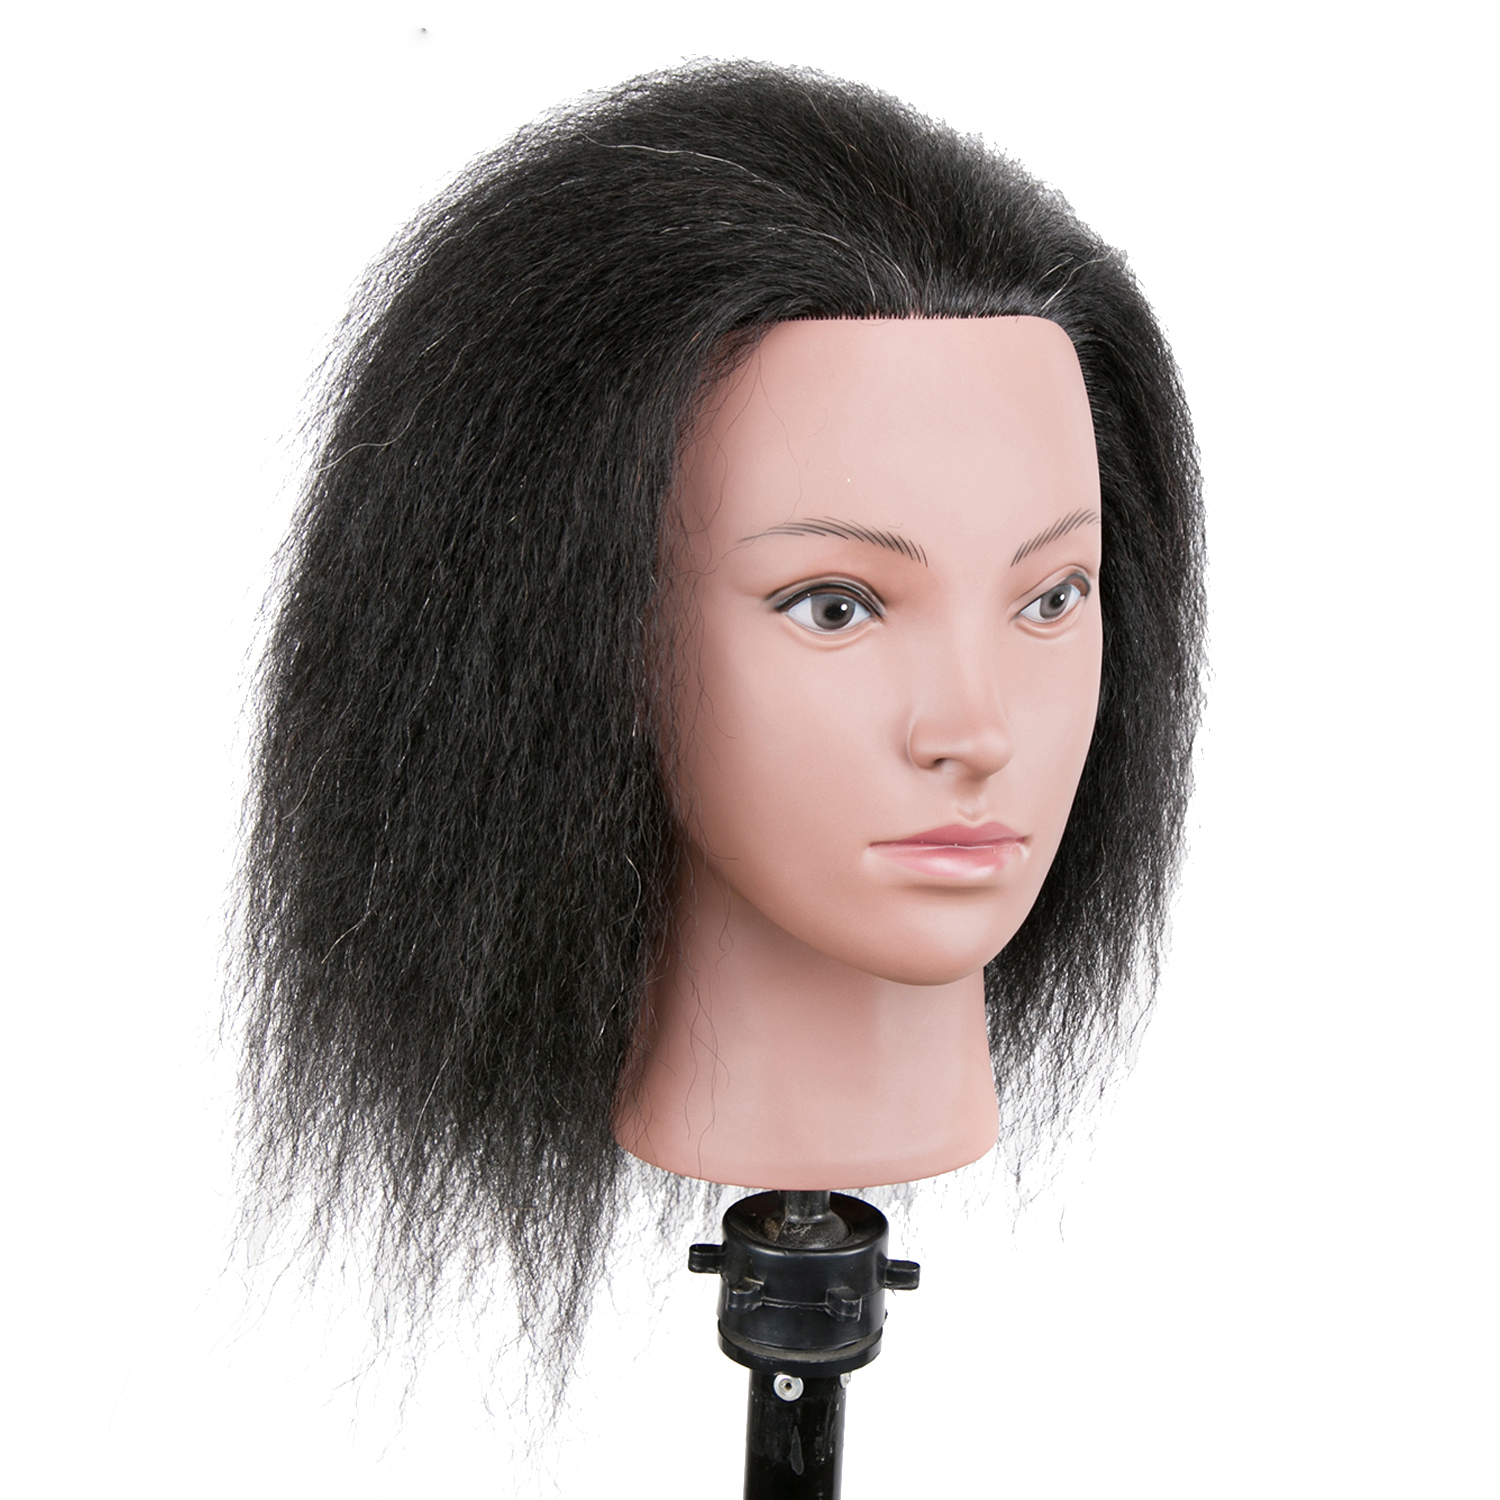 Afro hairdressing mannequin head for barber practice hair styling with mixed human hair dummy hair style salon training head